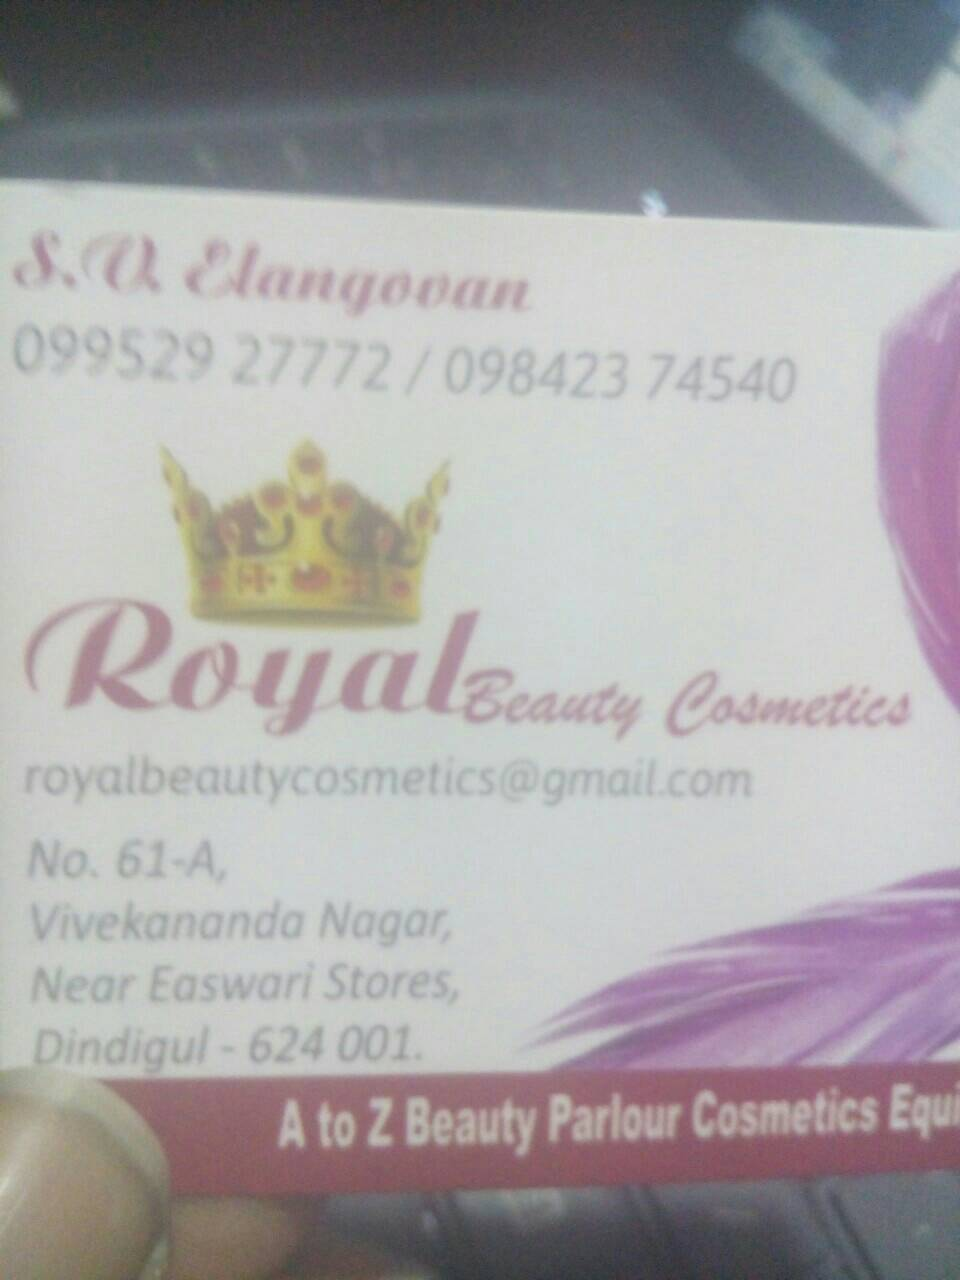 Royal Beauty 9952927772